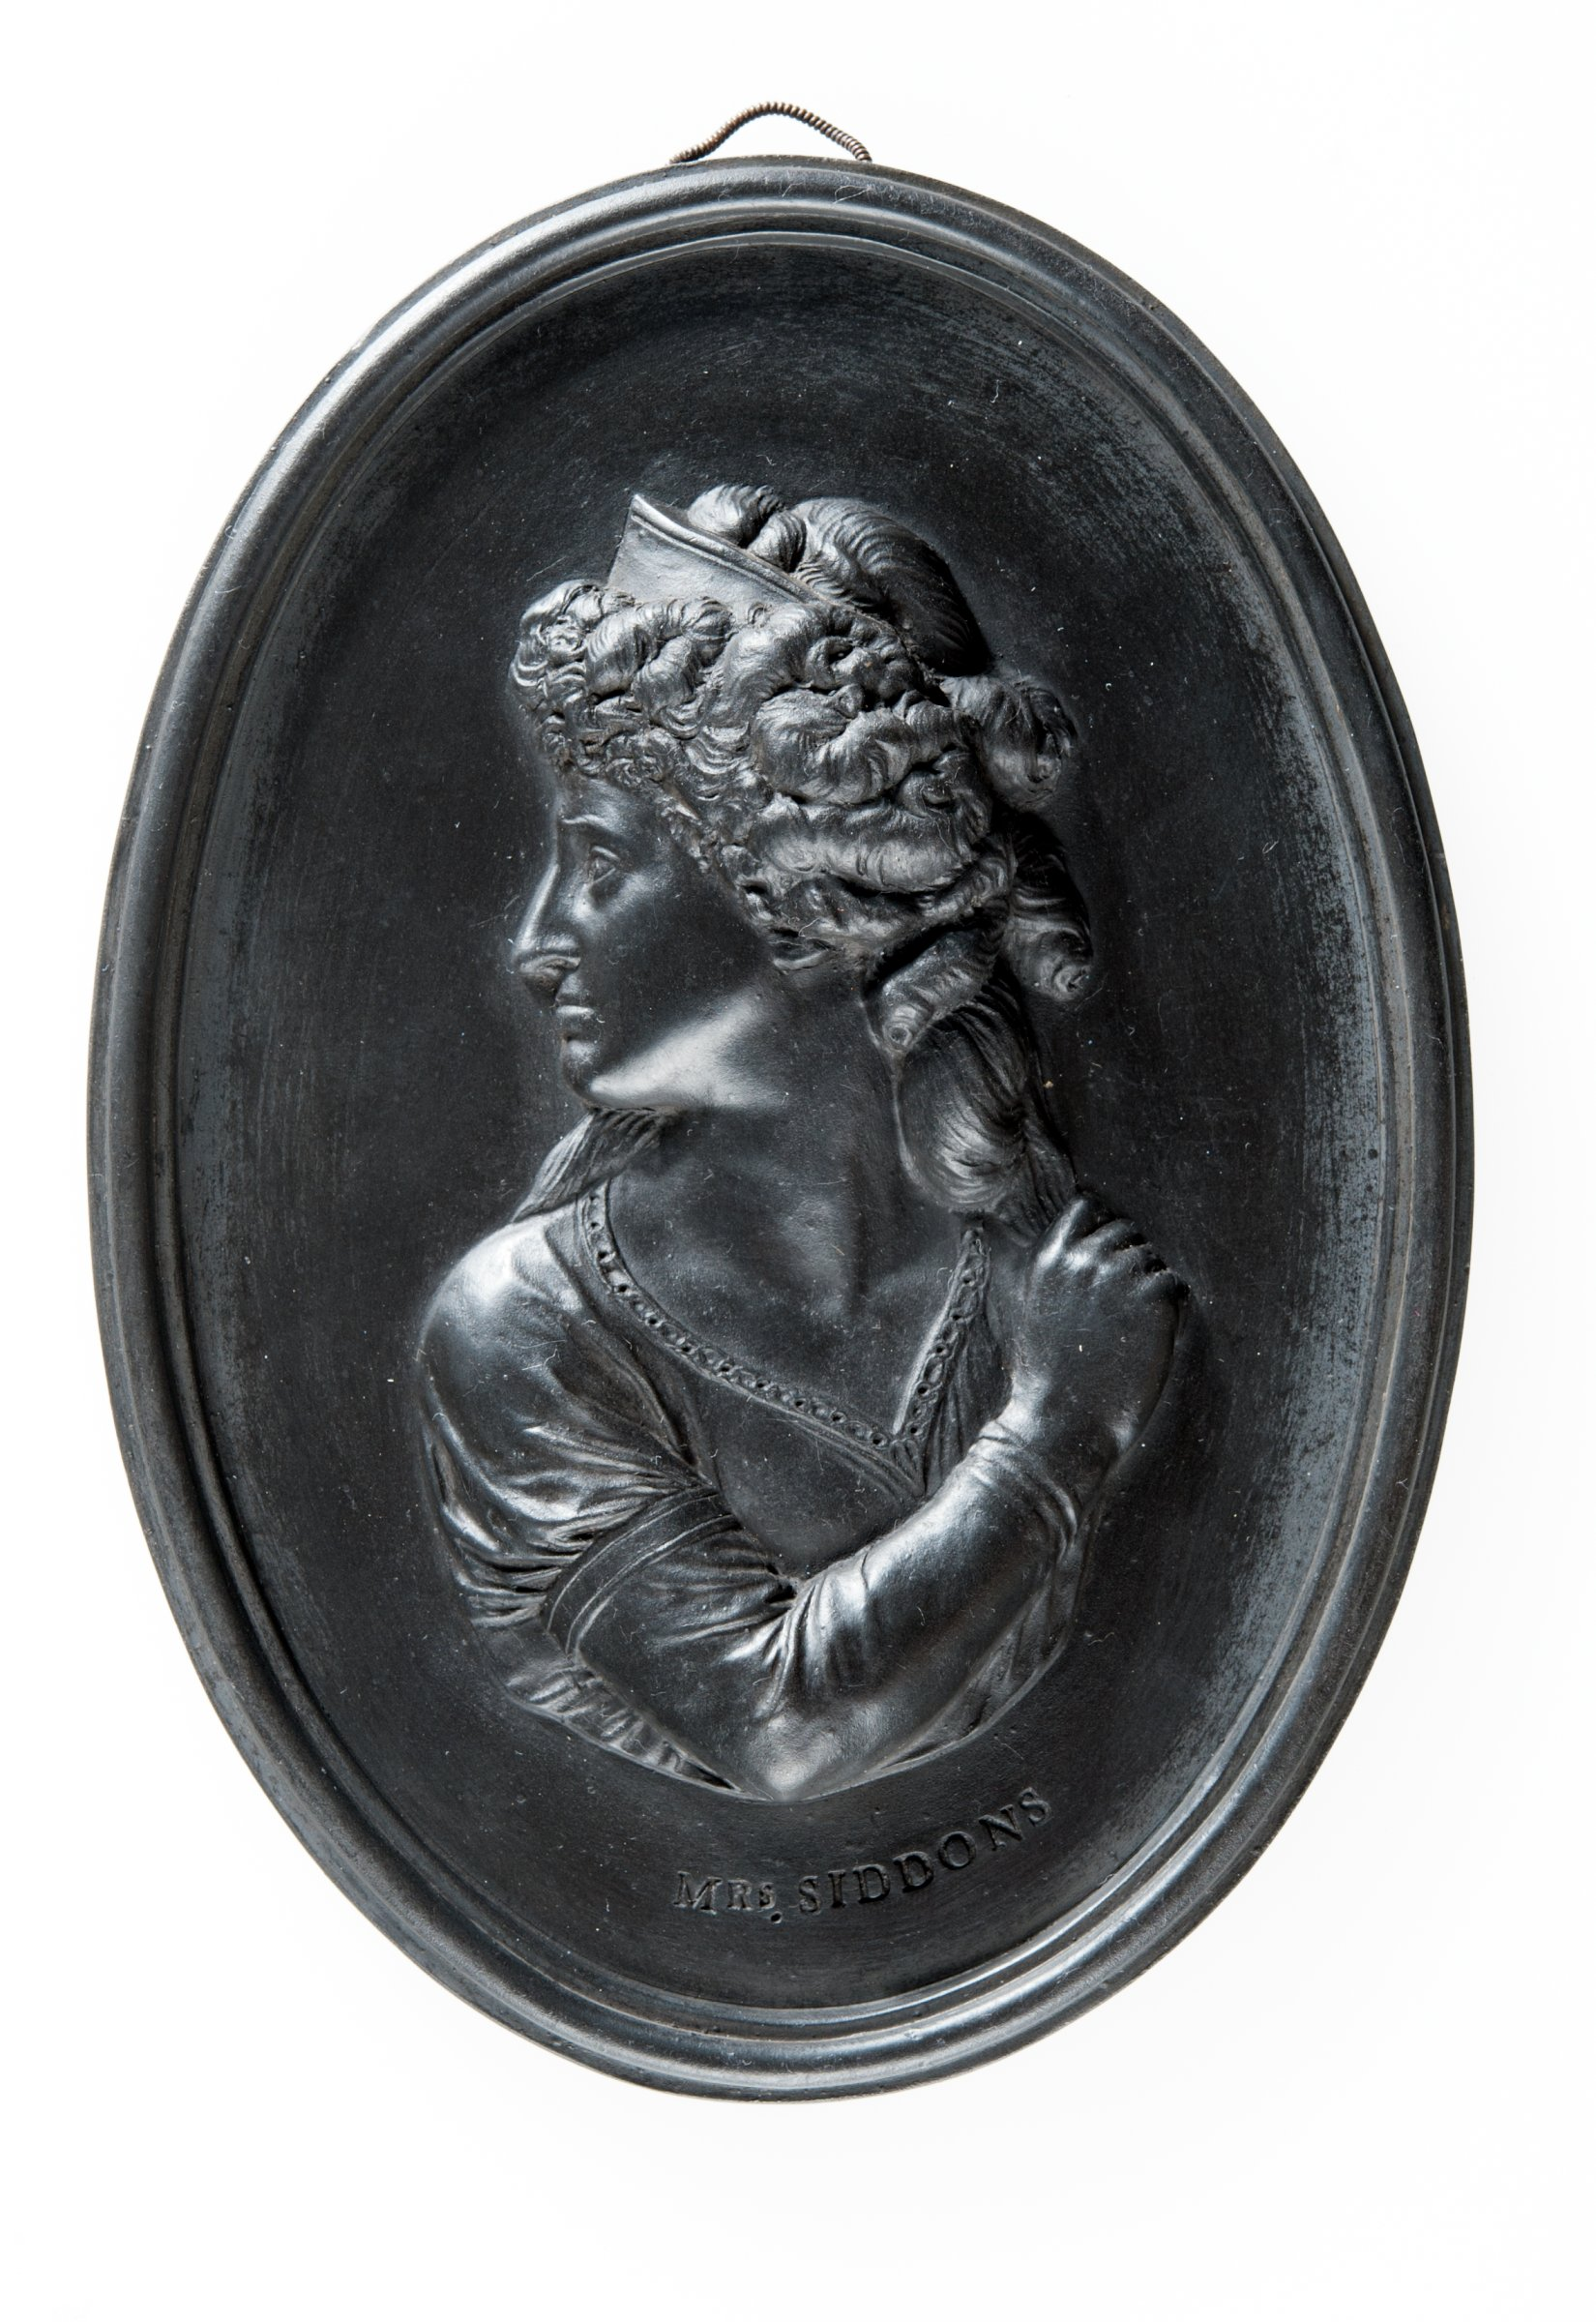 Oval basalt medallion with profile portrait of Mrs. Sarah Siddons (1755-1831) facing left. An English actress who was born in Brecon, she married the actor William Siddon in 1773. She was engaged by David Garrick to play at Drury Lane.